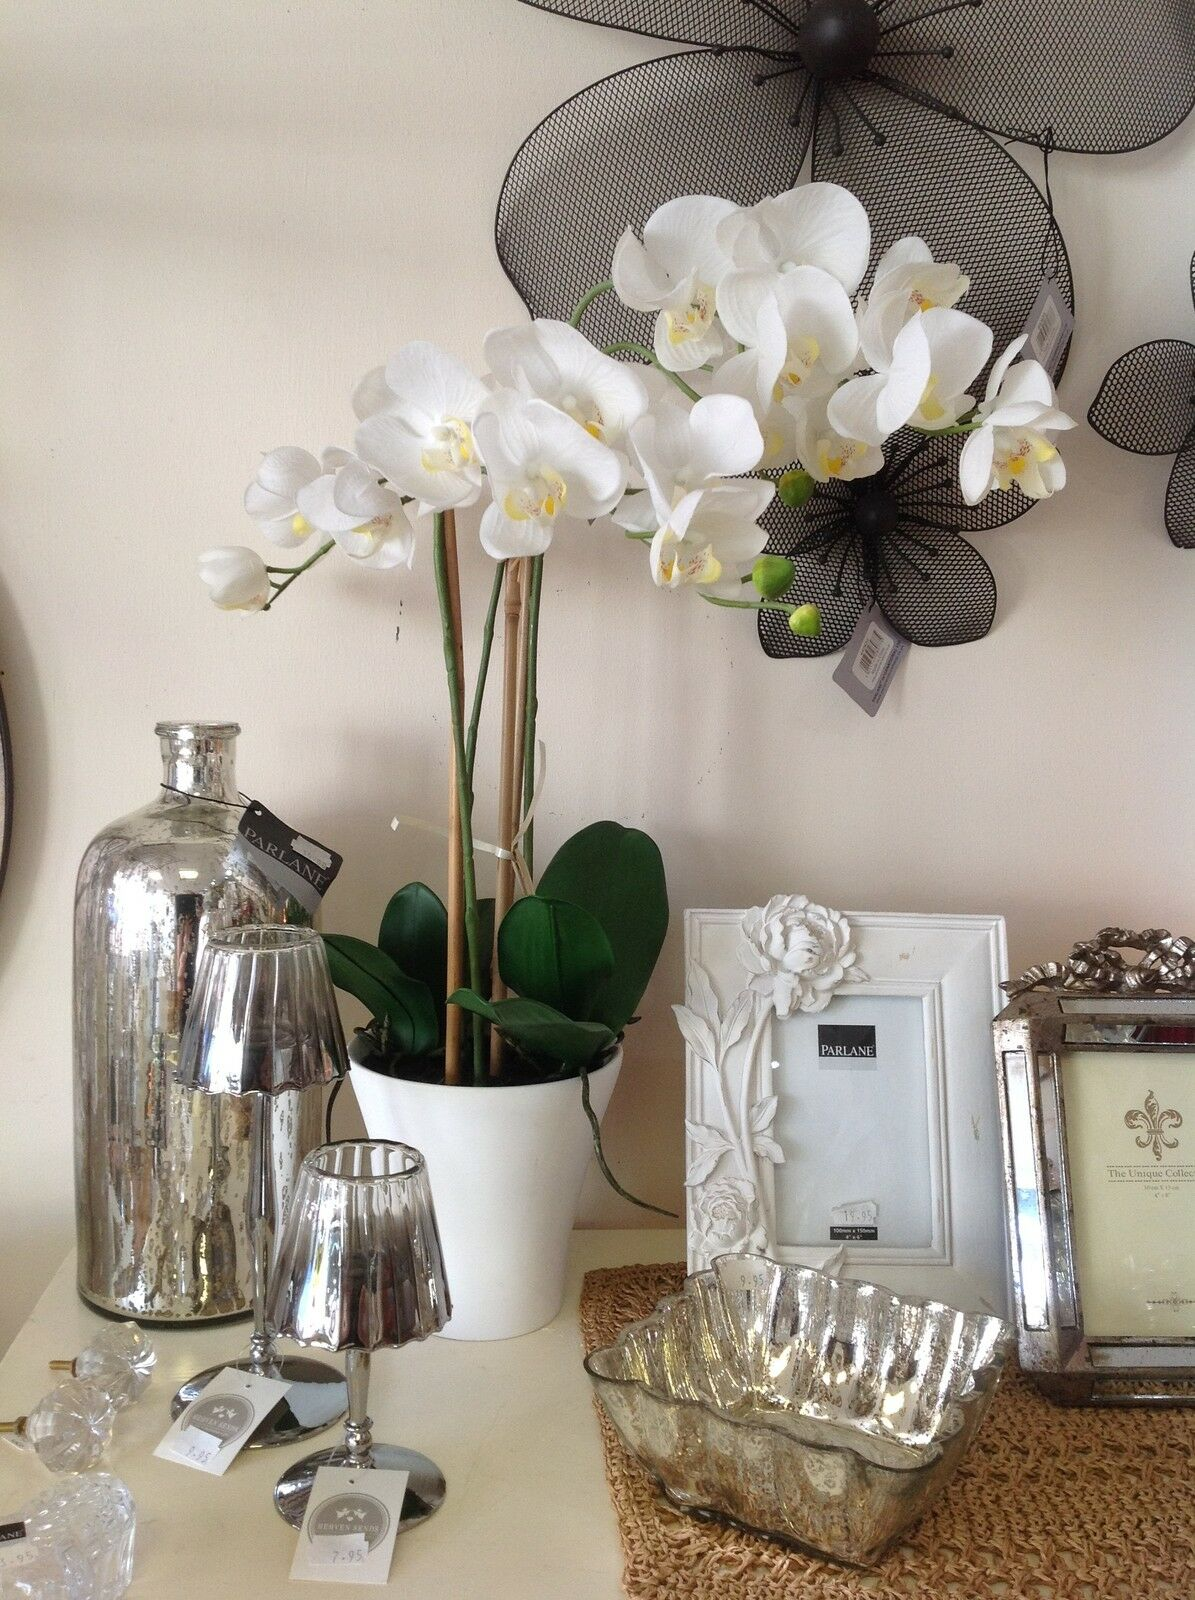 Cameo Gifts And Home Accessories